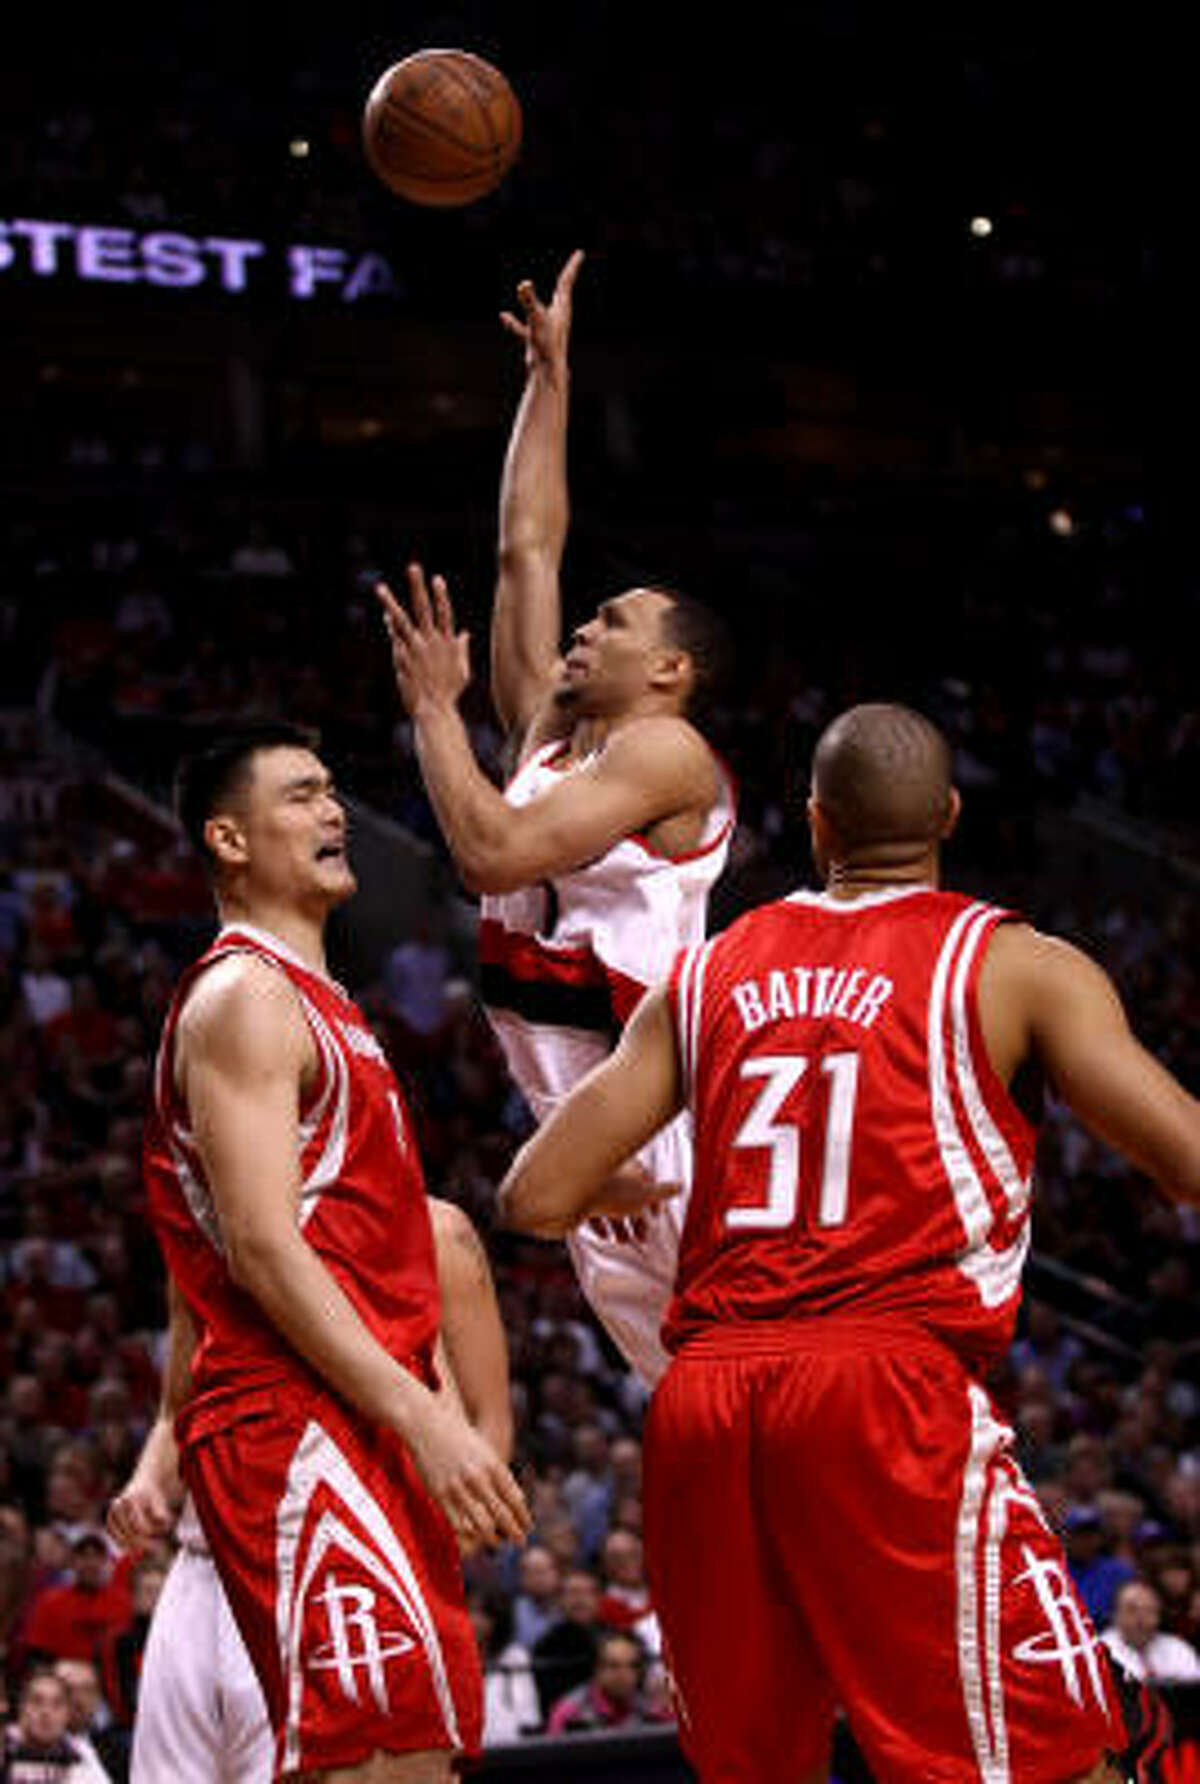 Trail Blazers guard Brandon Roy floats one over Yao Ming in the first half.